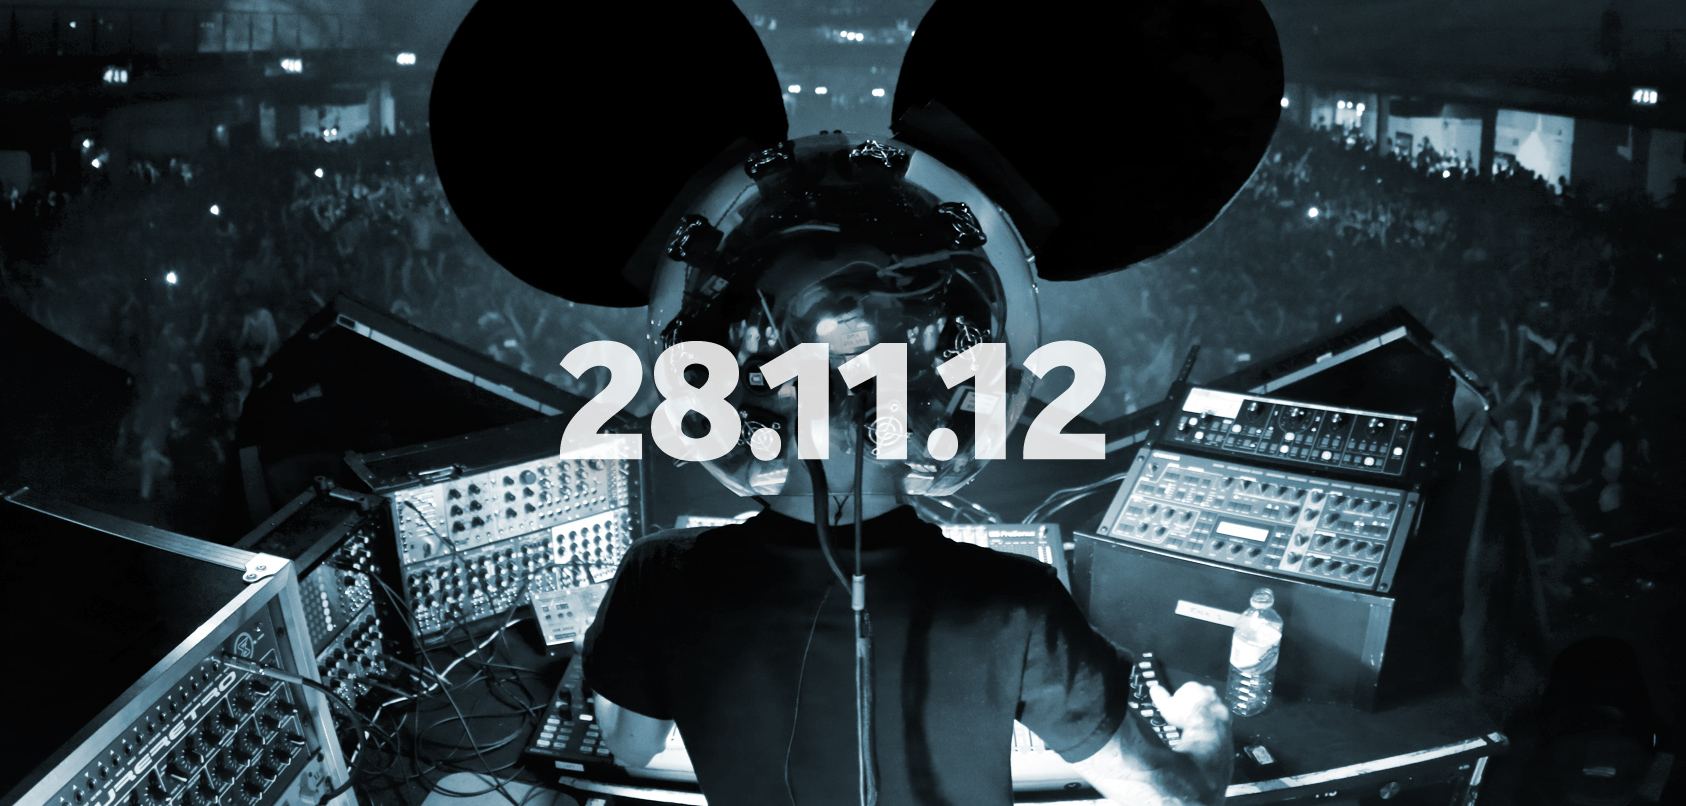 Nokia + Deadmau5 Return 28.11.12: But What Do They Have In Store…?